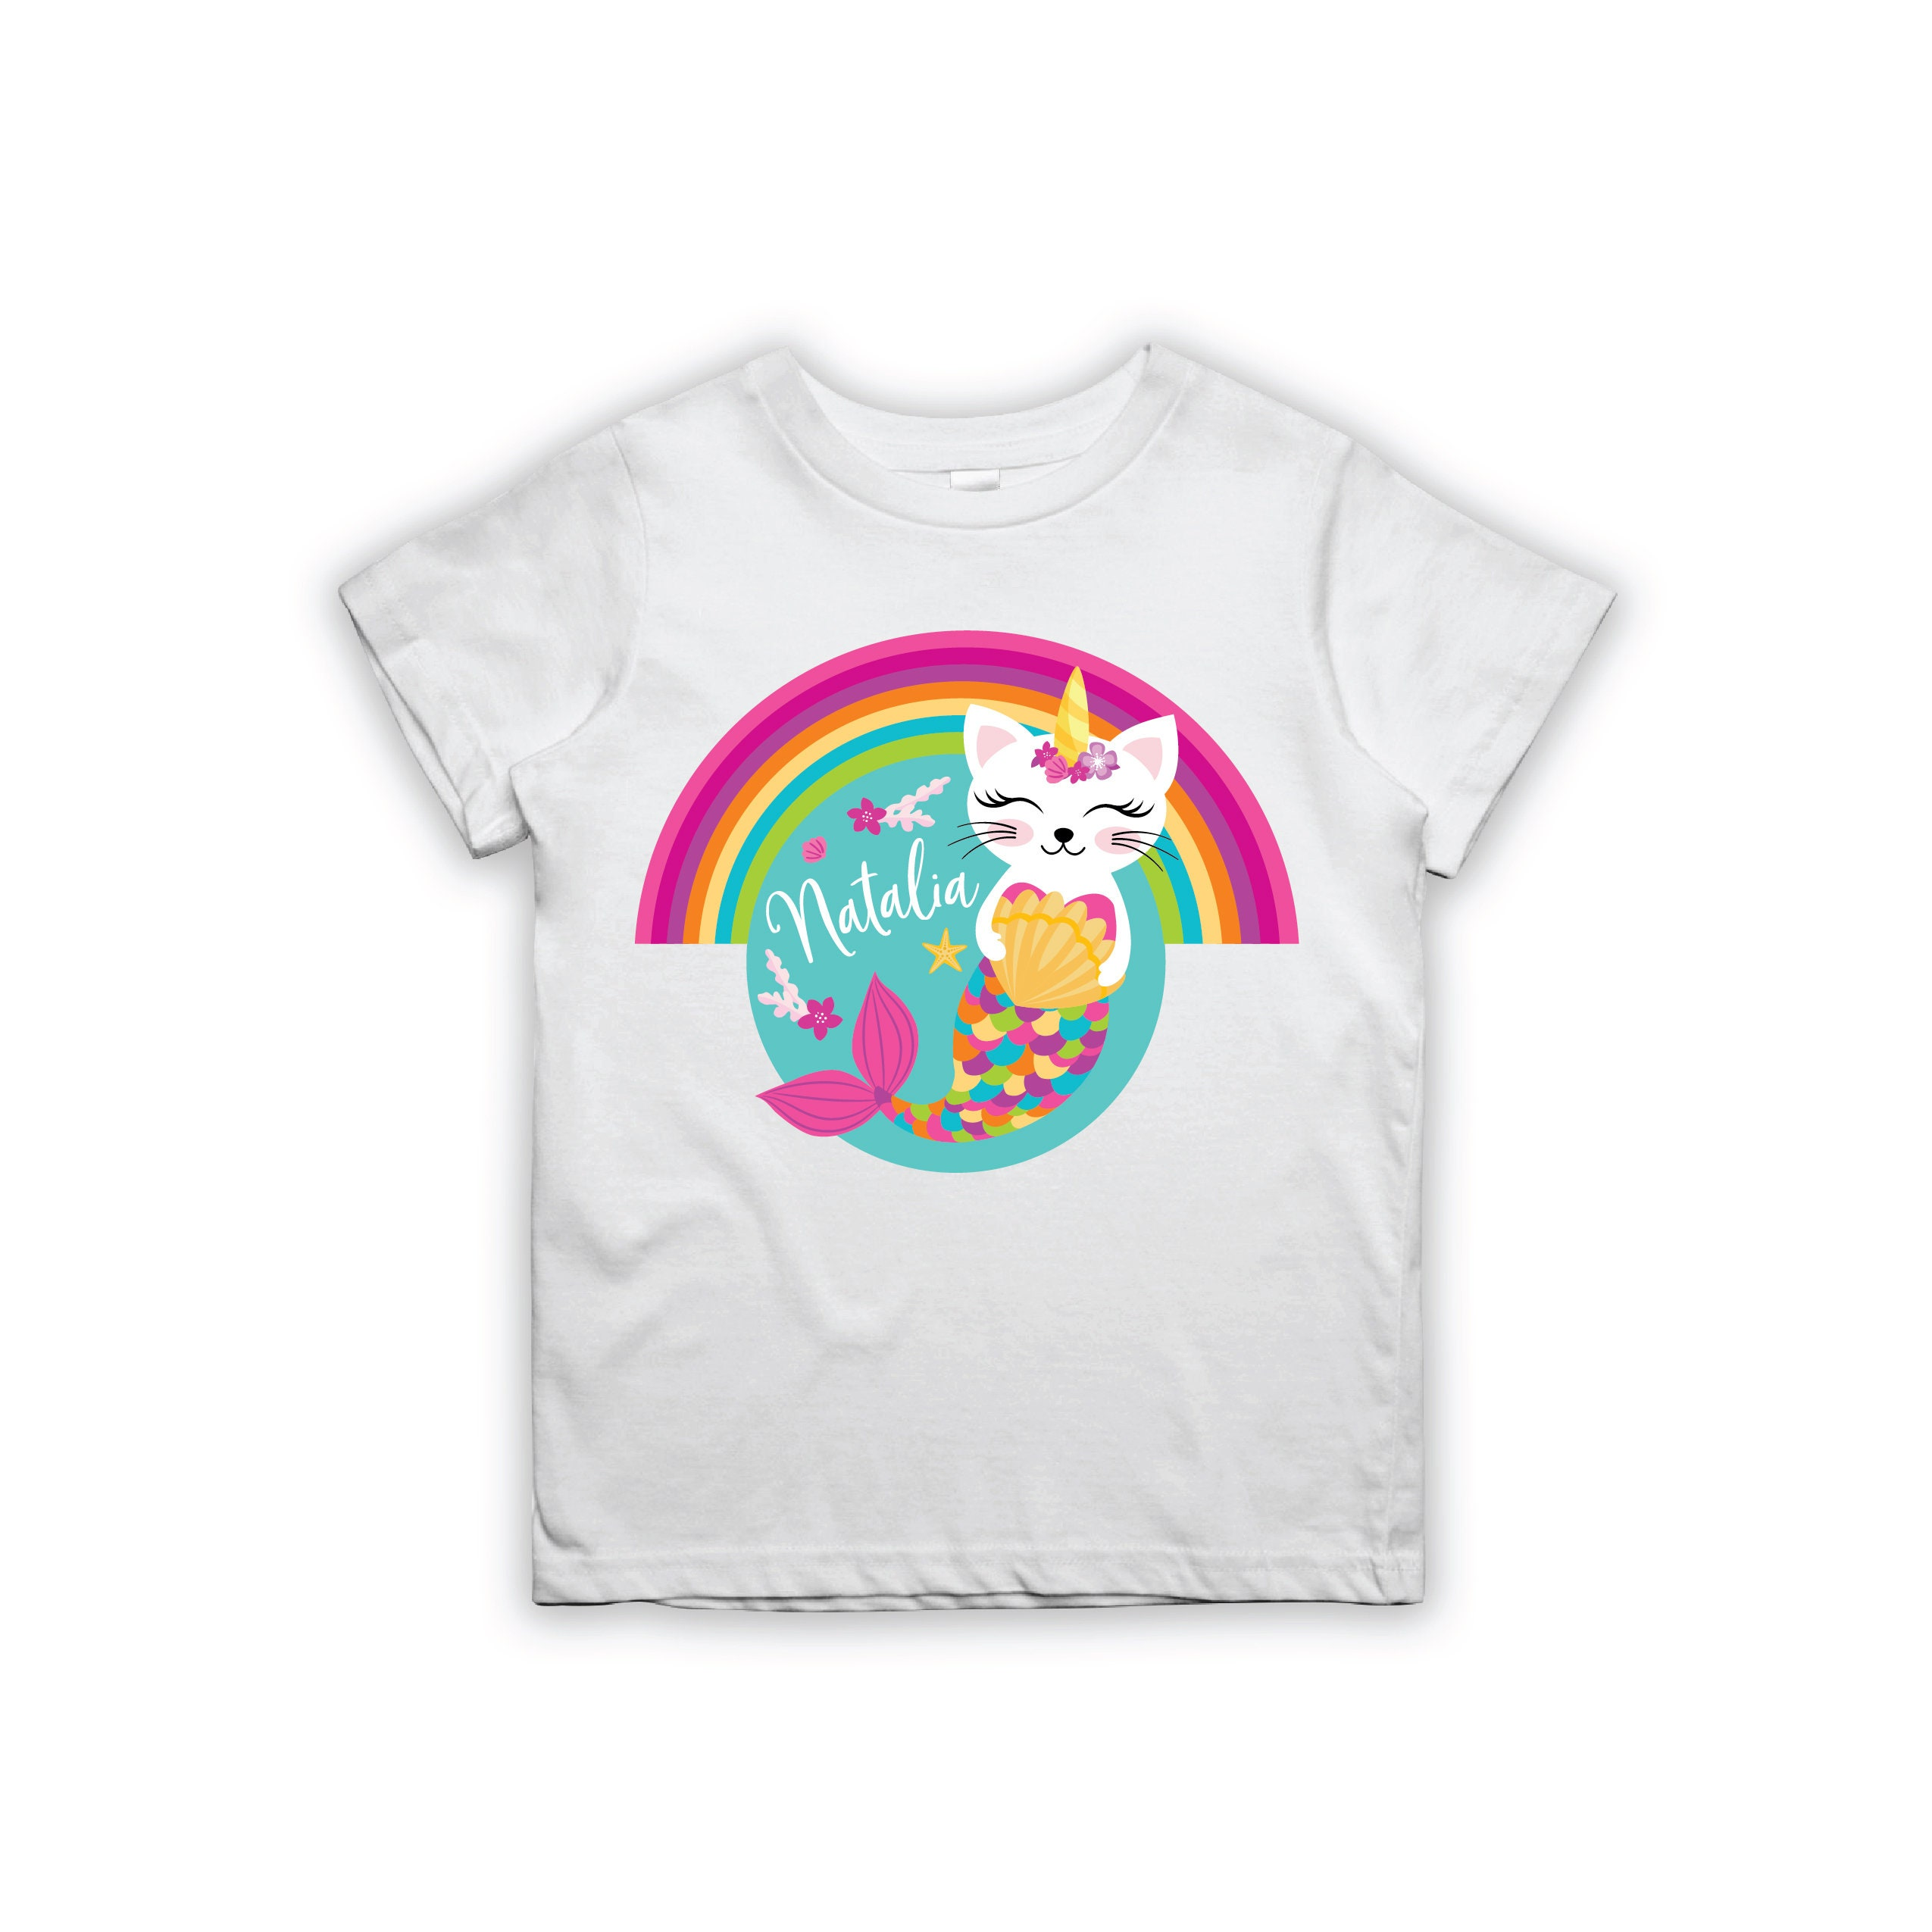 Caticorn T Shirt Design Personalized Printable Caticorn Etsy